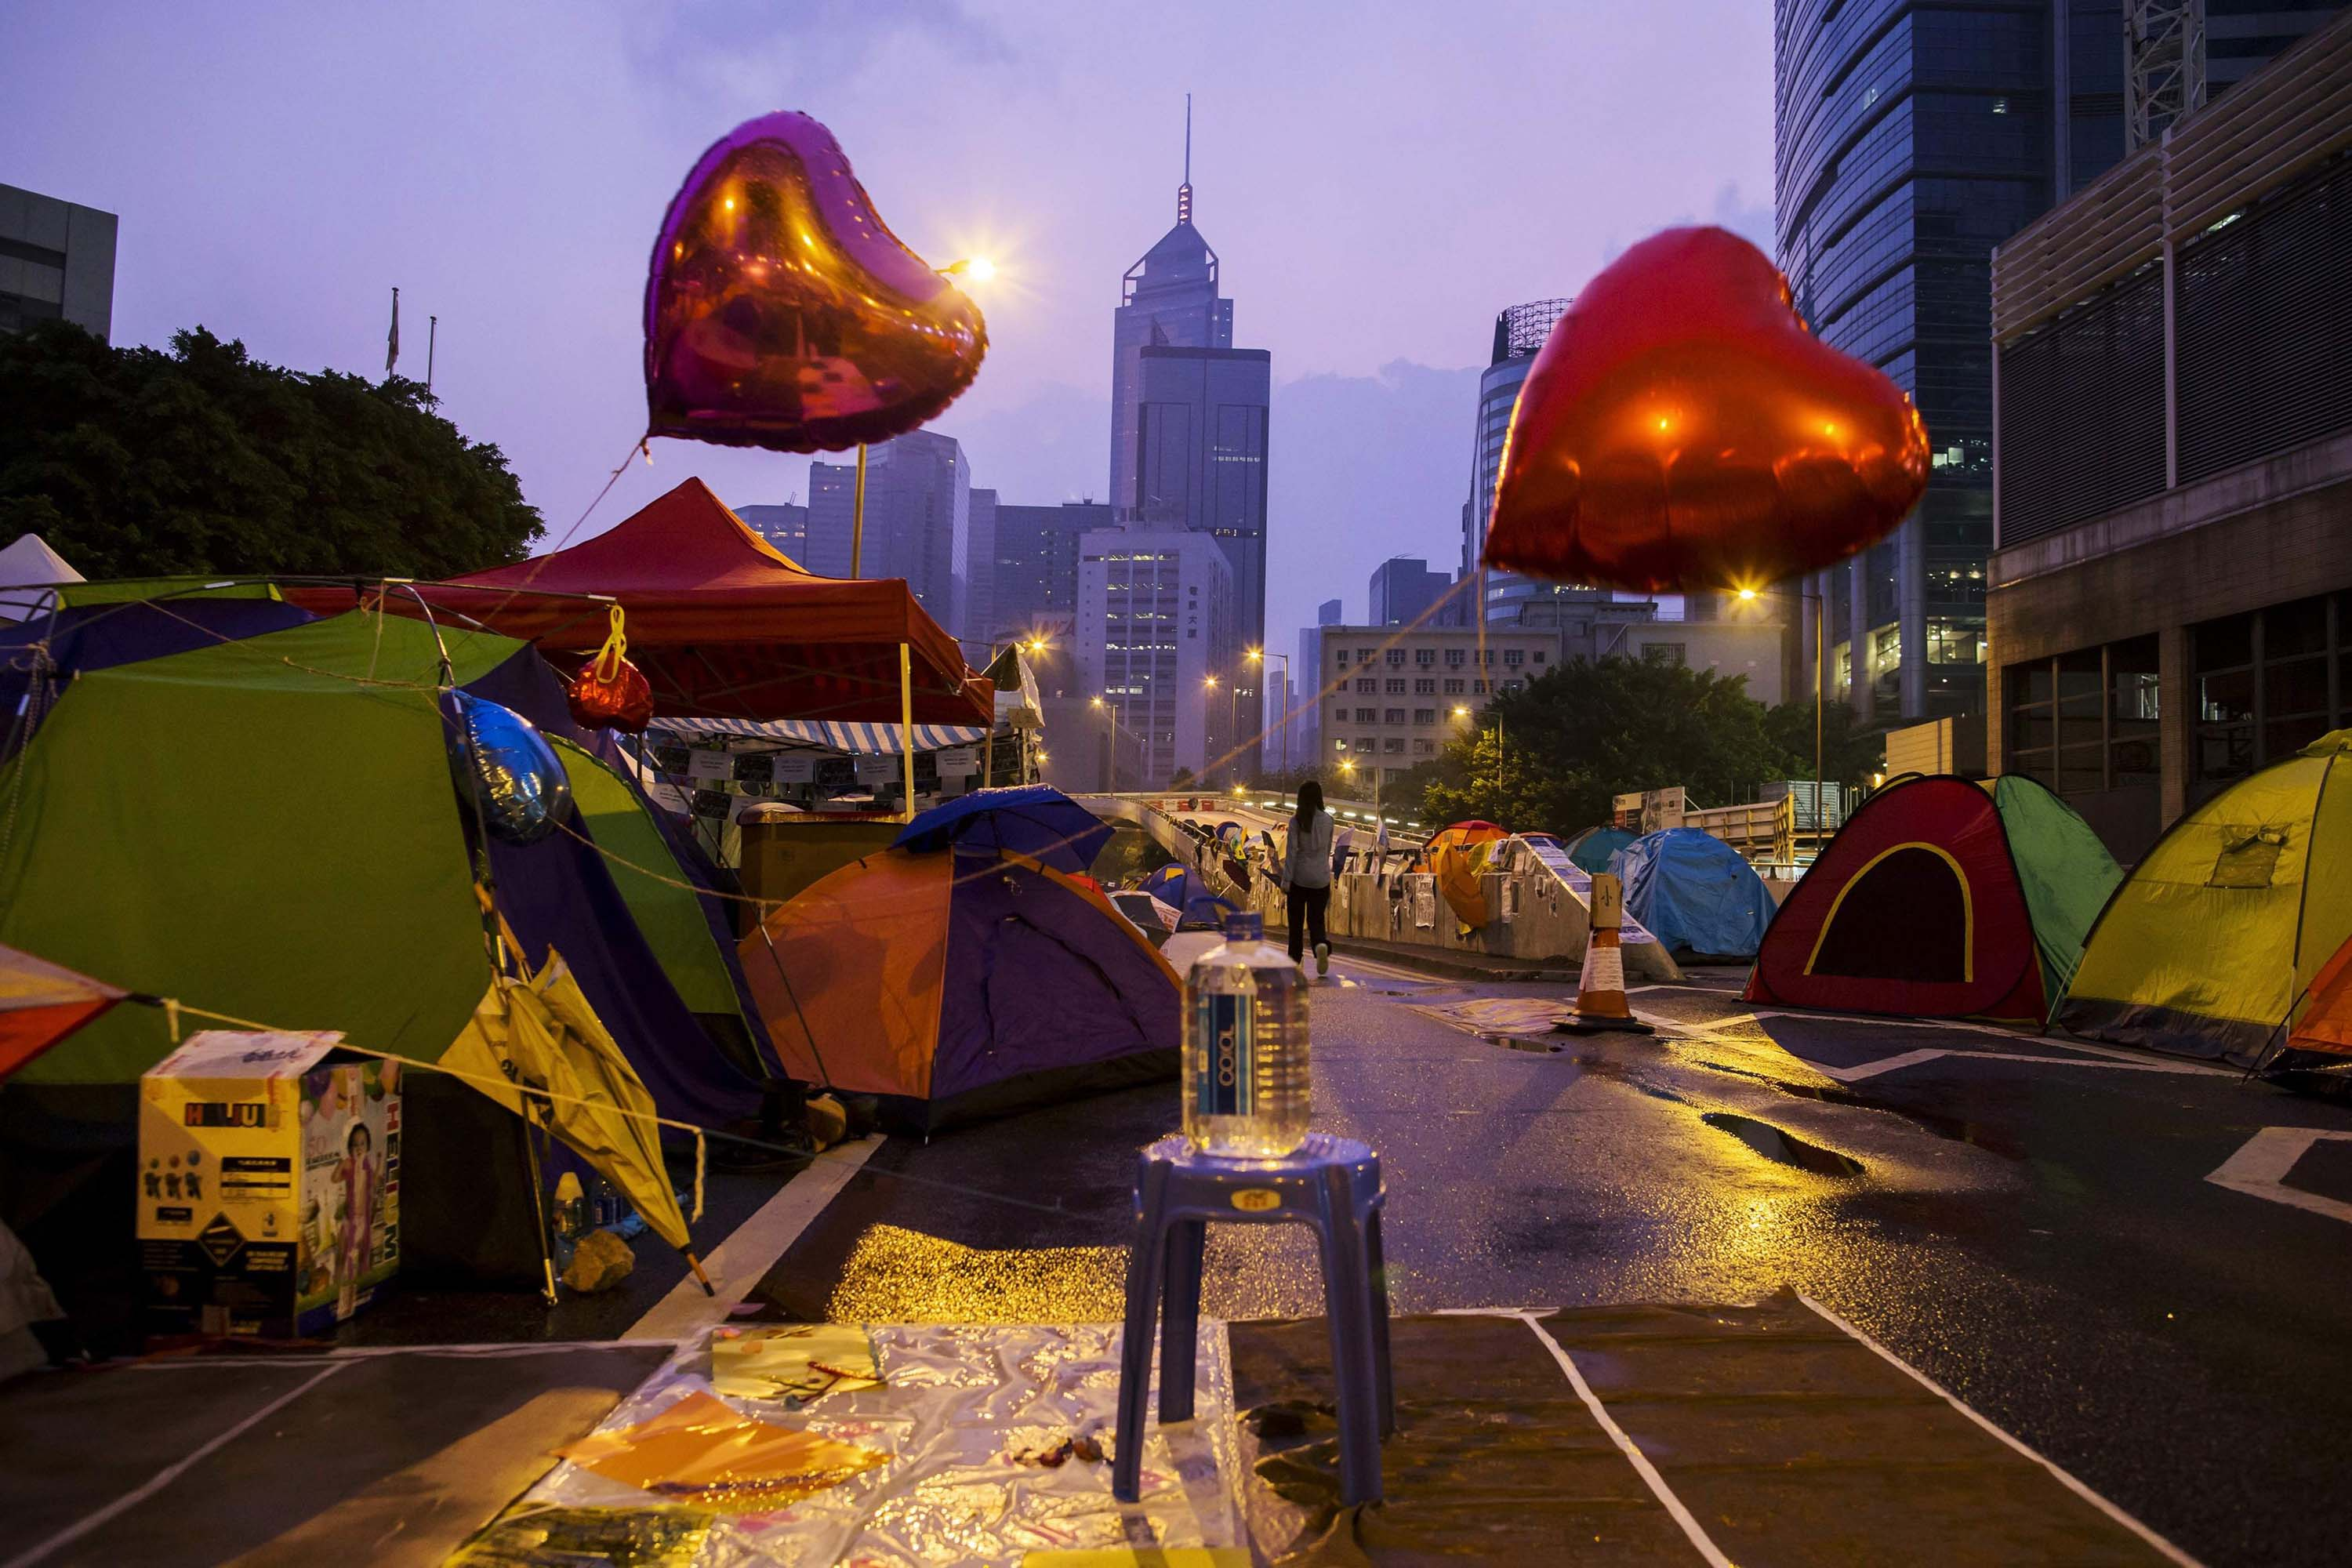 An Occupy Central protester walks past tents before sunrise on a main road leading to the financial Central district in Hong Kong on Oct. 16, 2014.